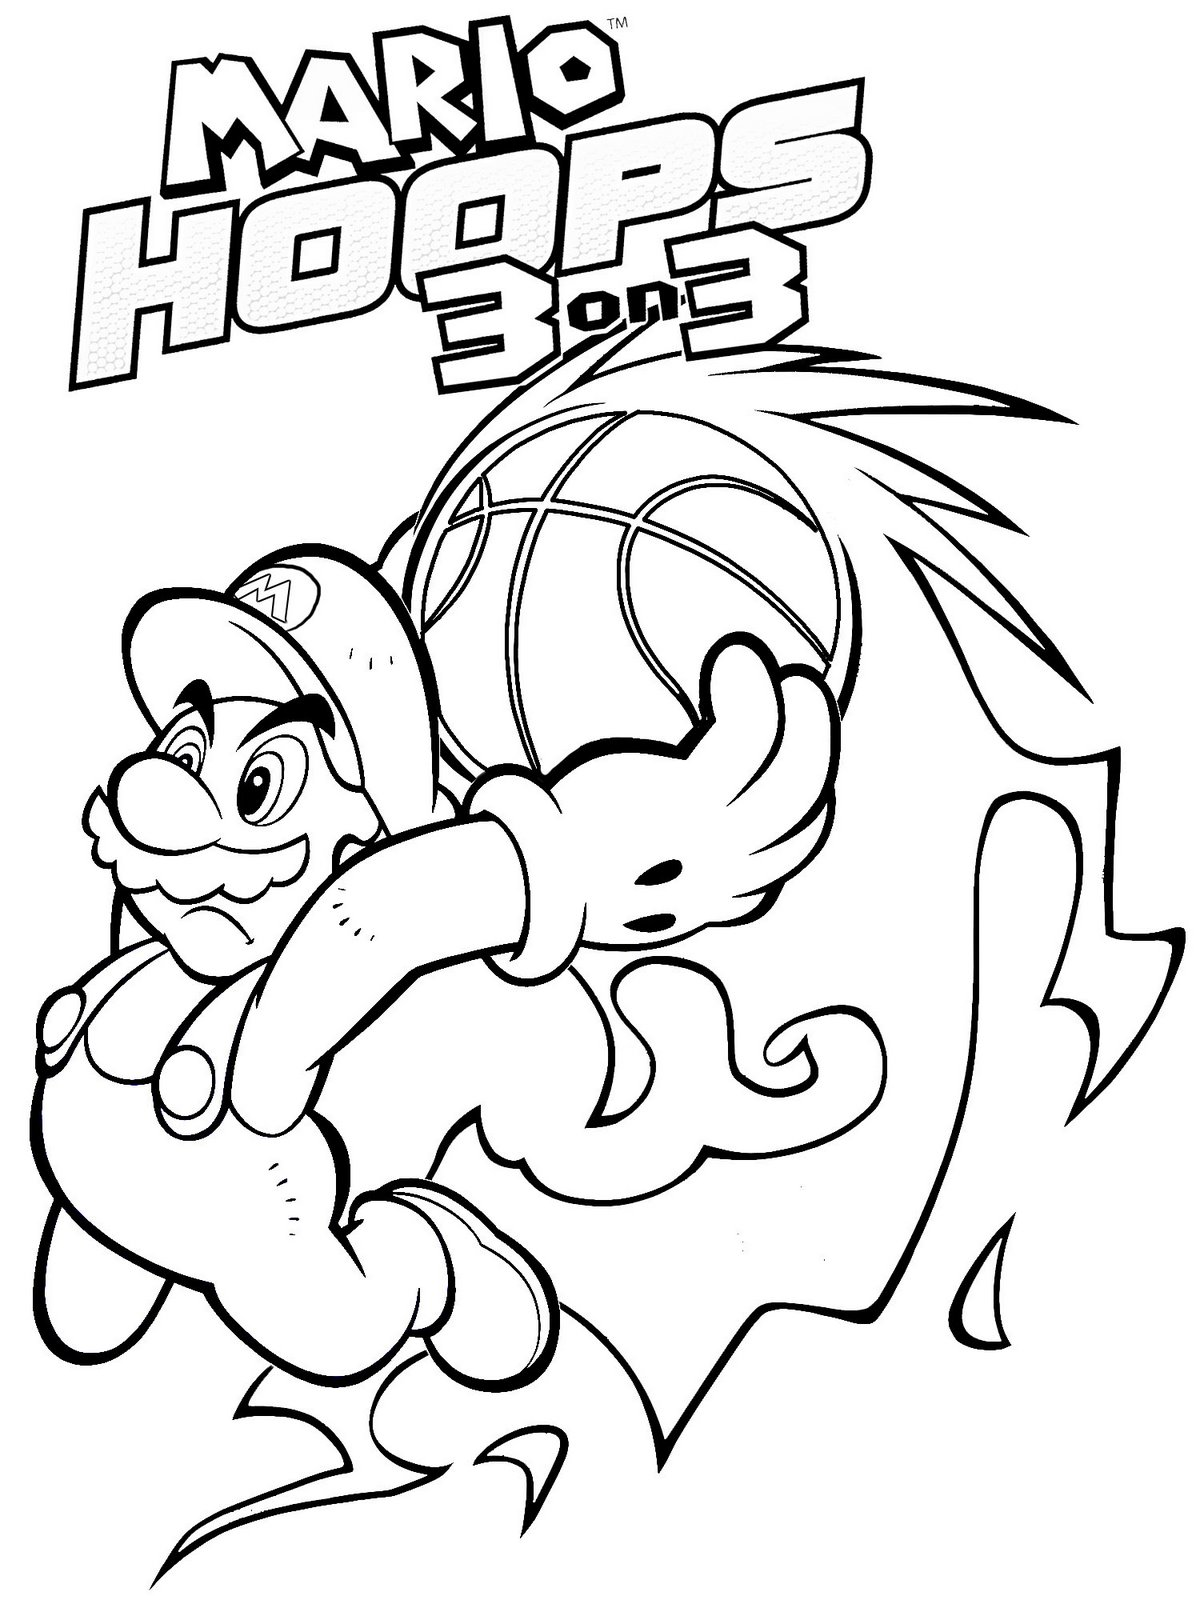 printable mario coloring pages download - Mario Kart Coloring Pages